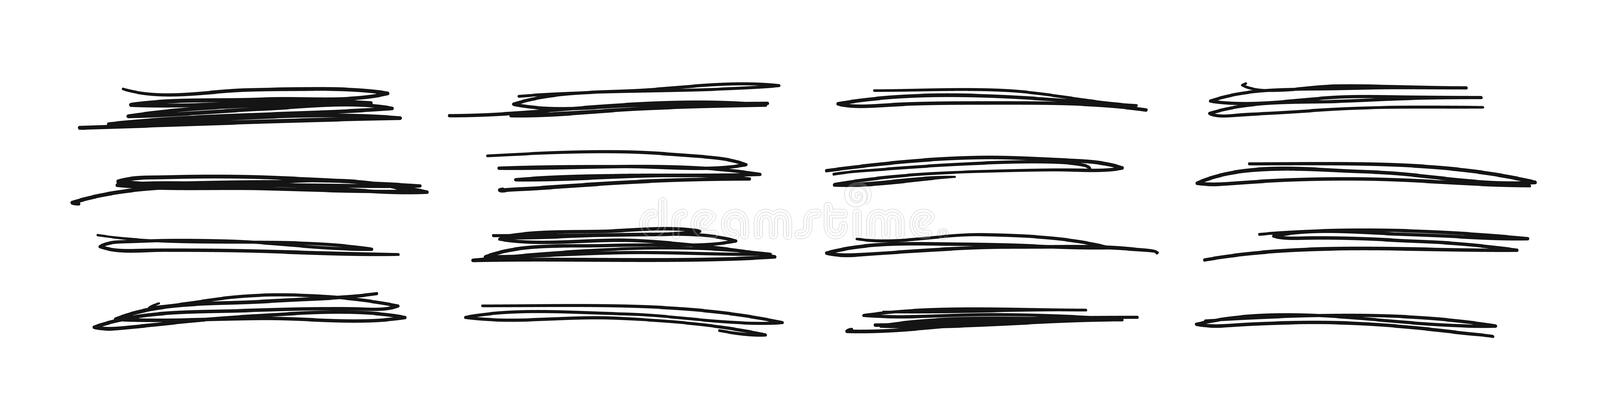 Hand drawn set of objects for design use. Black Vector doodle crossed out lines on white background. Abstract pencil drawing stock illustration